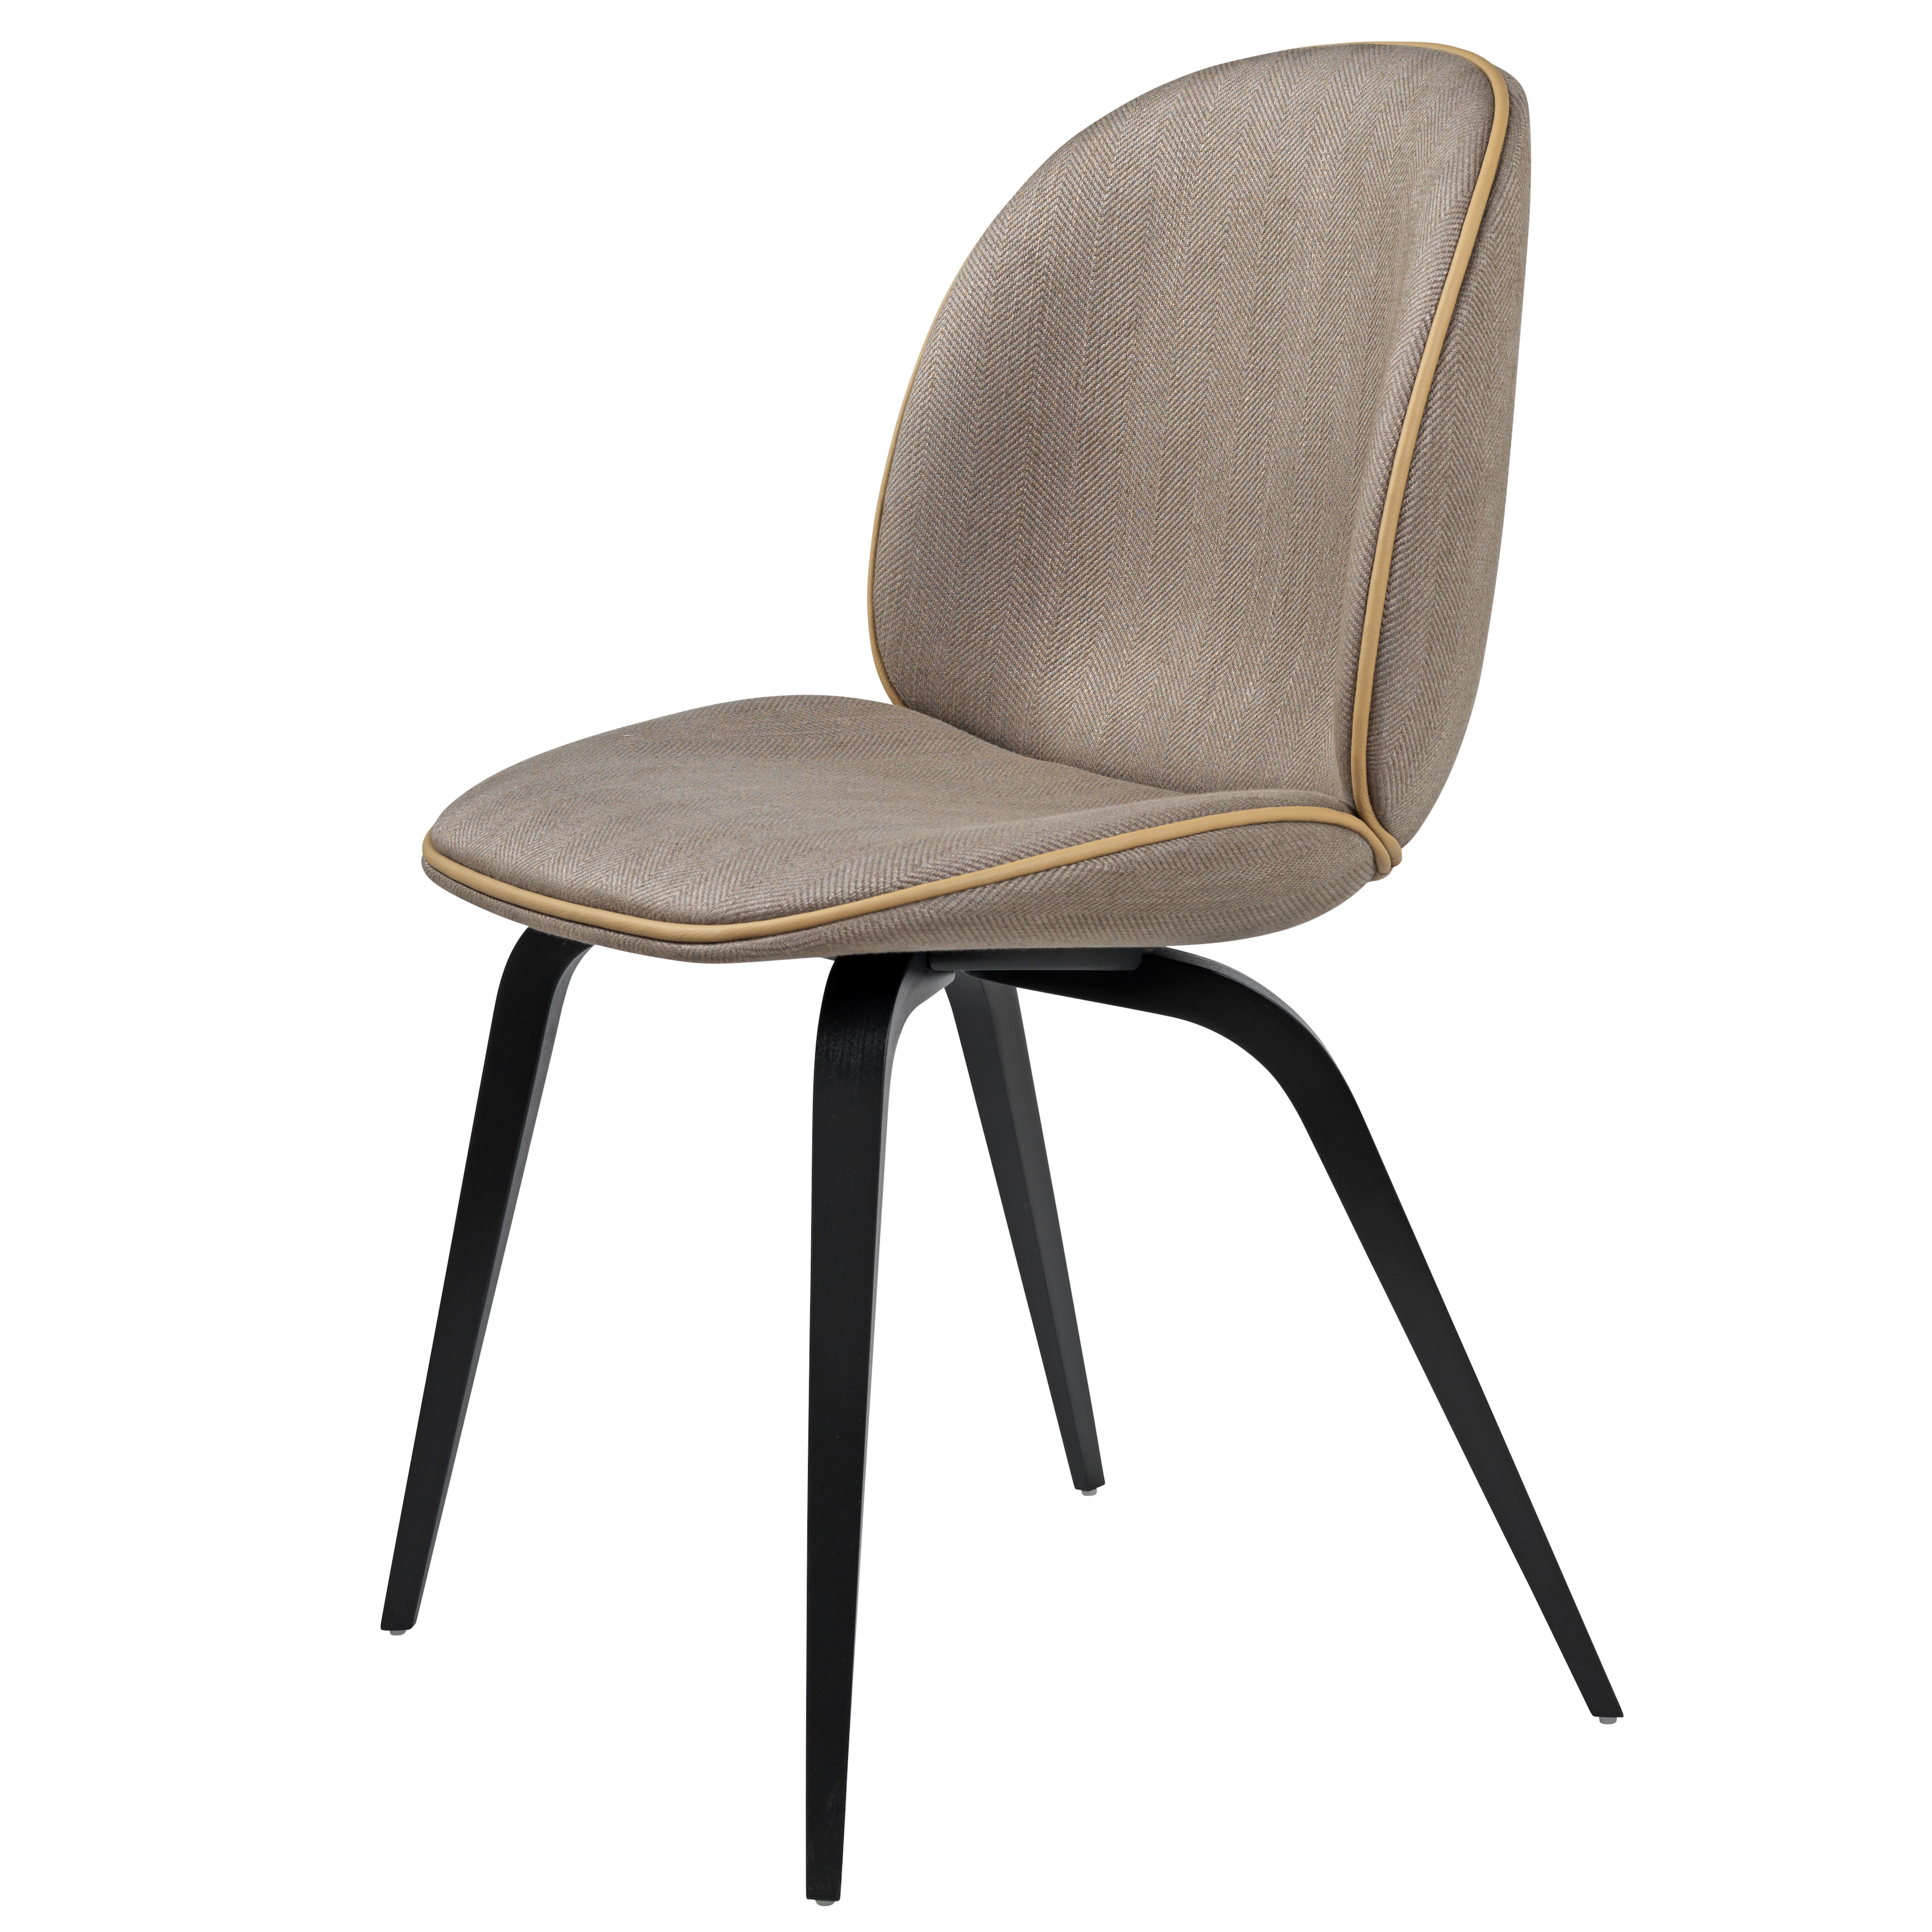 Gubi Beetle Chair With Wooden Base Fully Upholstered